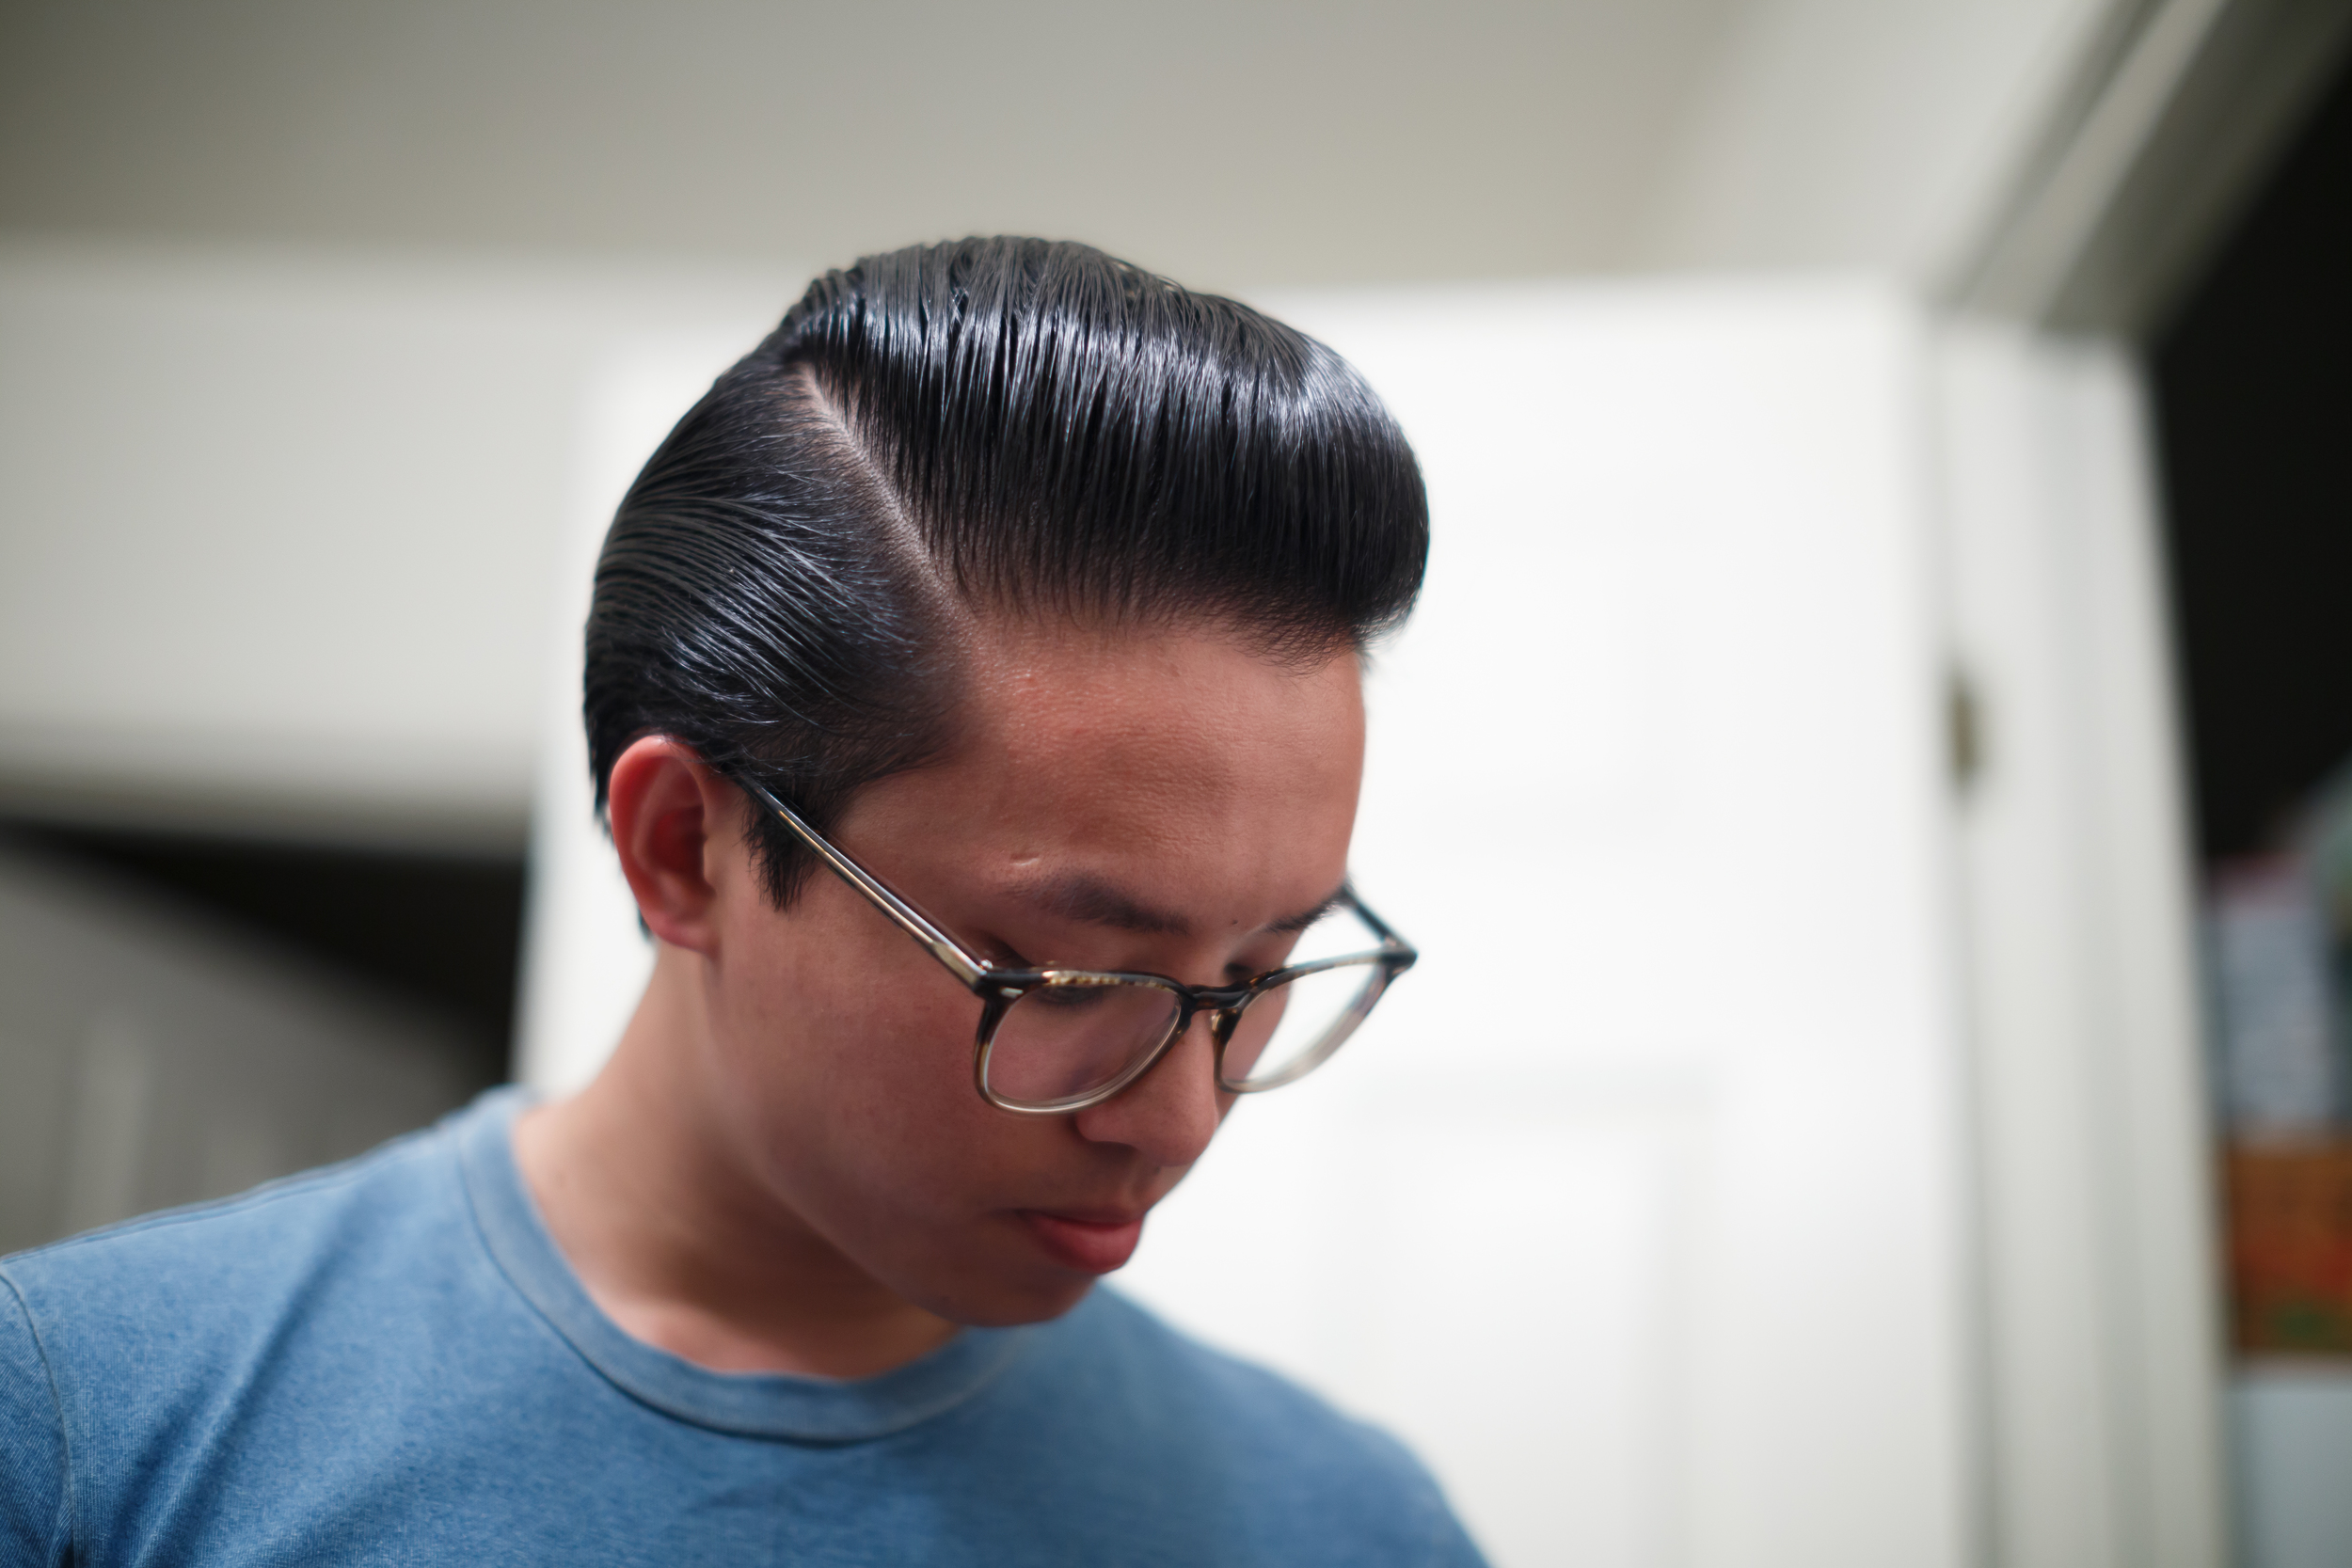 Charming Pomade Cool Grease CoolGrease Hedgelion Japan Japanese Hair Hairstyle Pomp Pompadours dfsf3